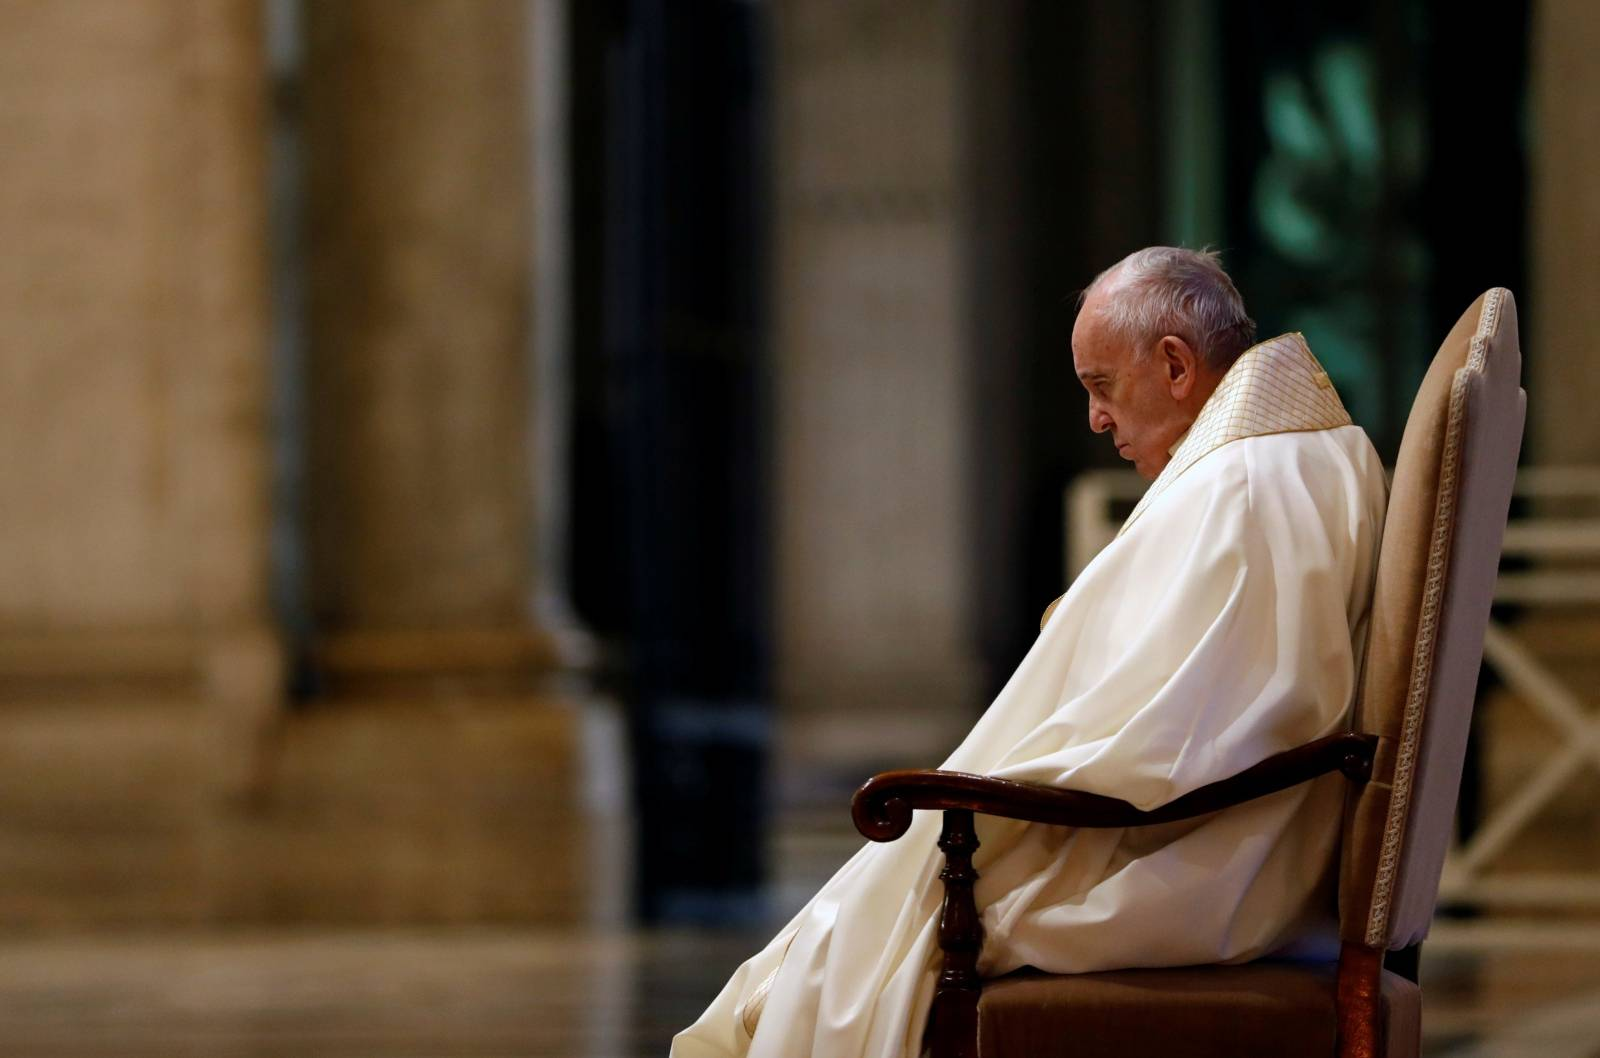 Pope Francis delivers an extraordinary blessing during the outbreak of coronavirus disease (COVID-19), at the Vatican